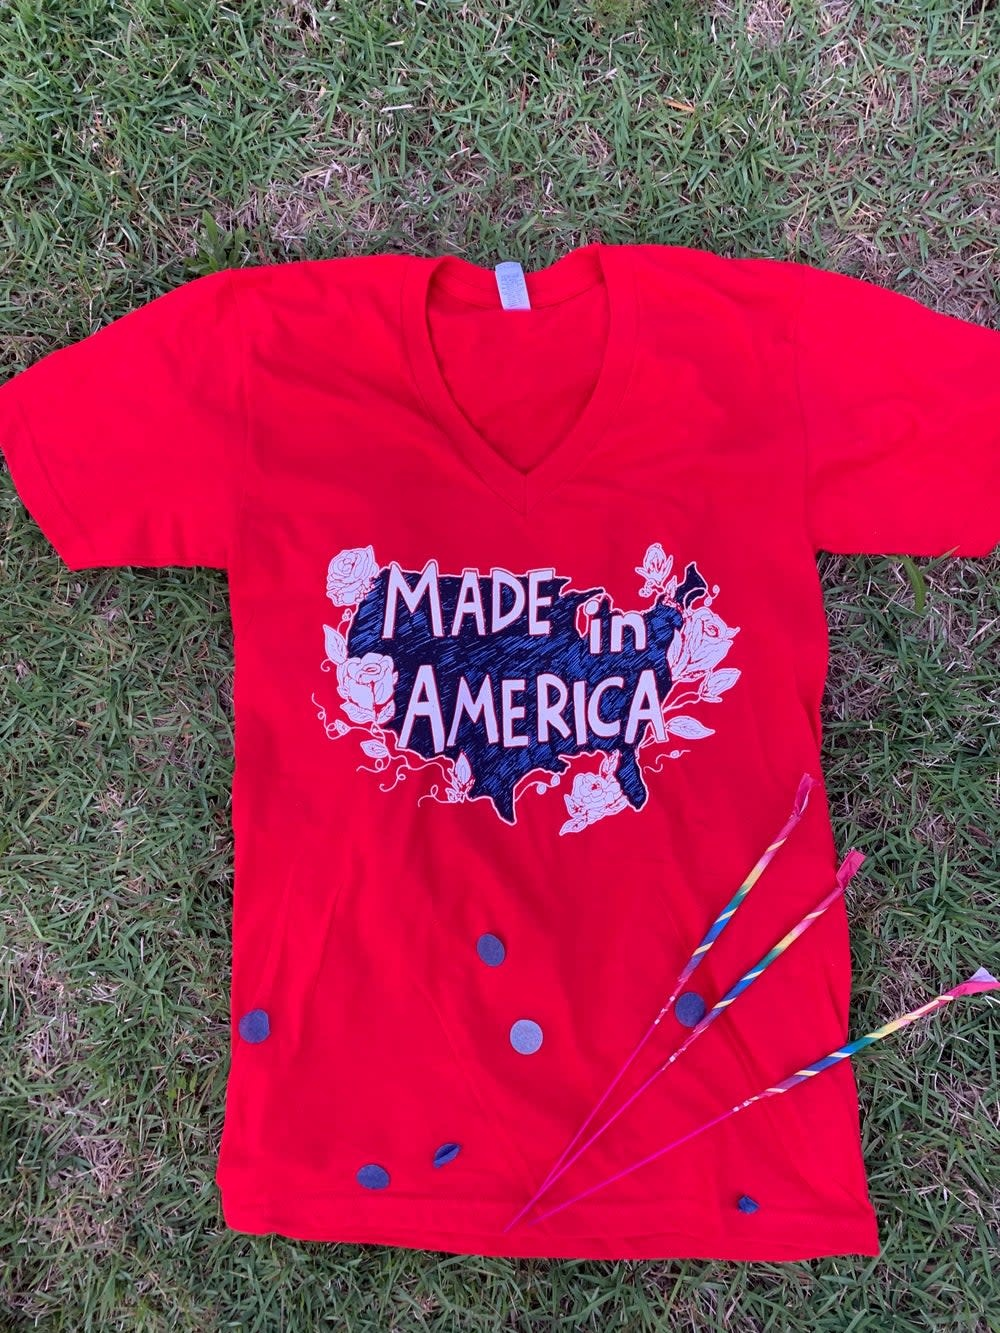 Mr Ps Tees Adult Made in America V-Neck Tee